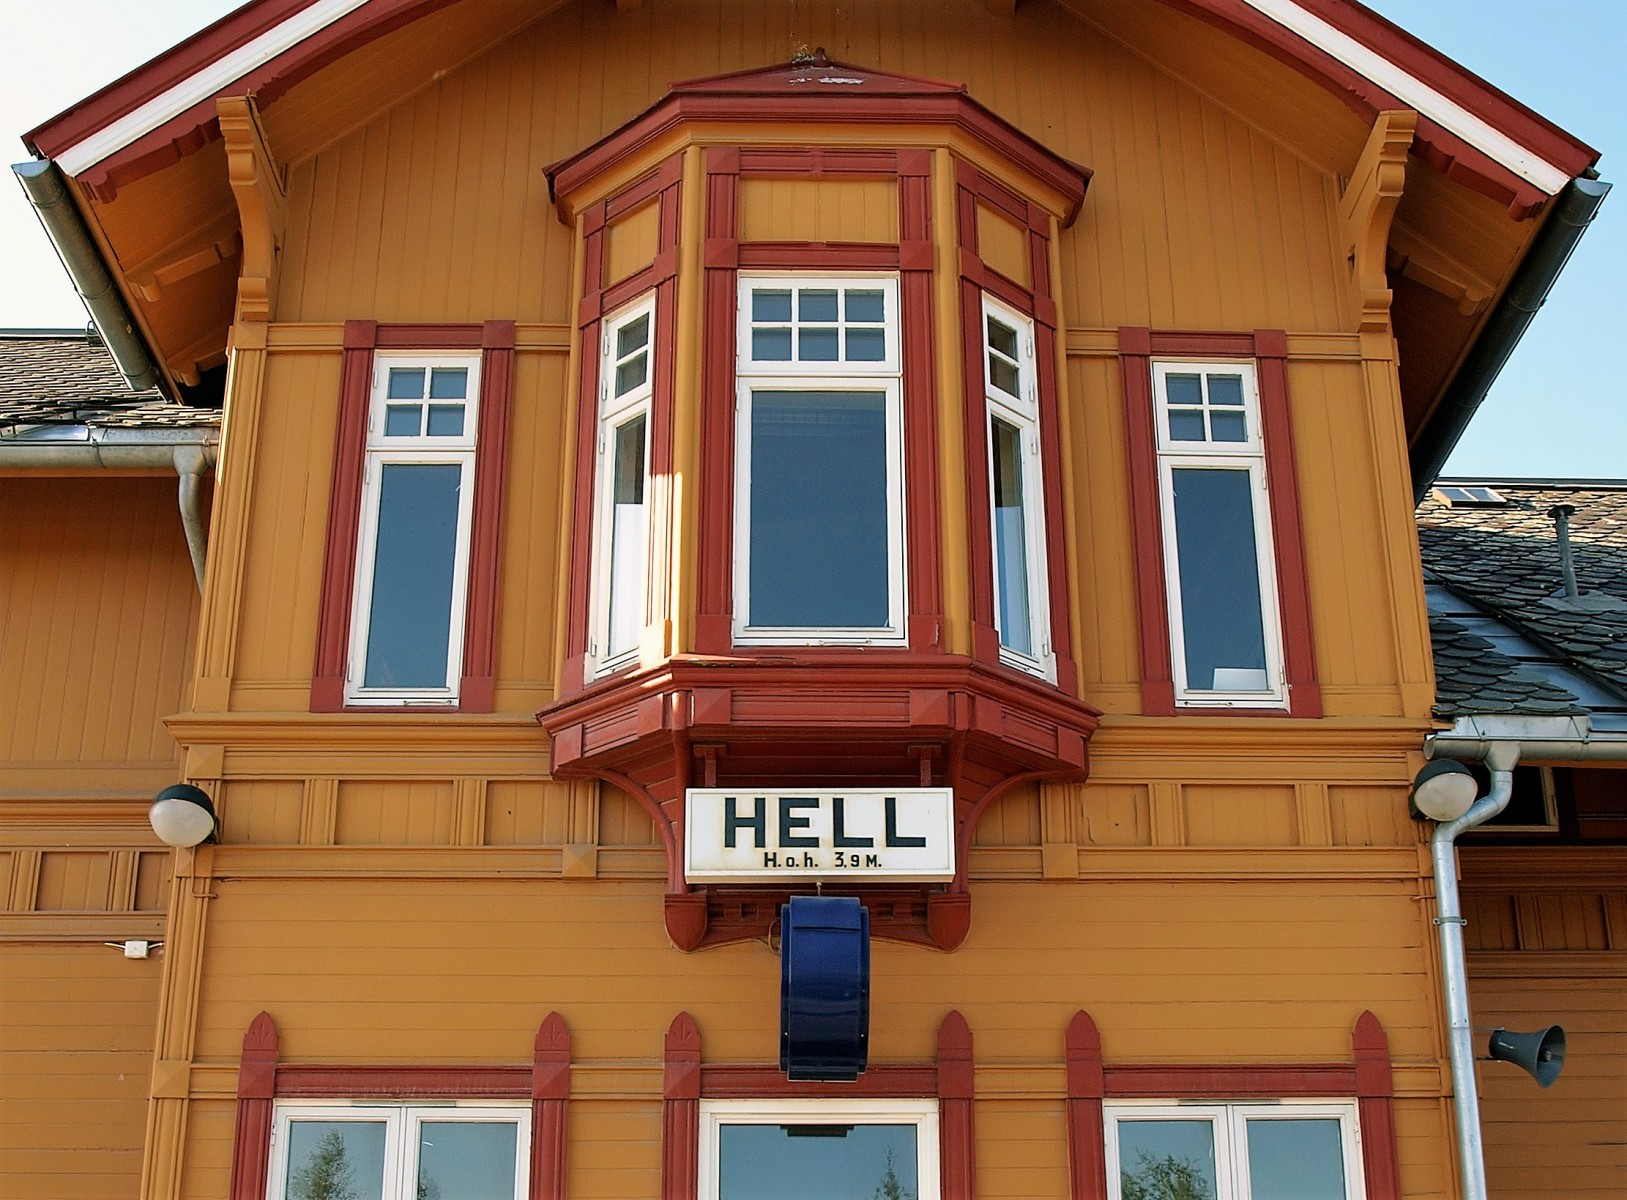 Hell, Norway